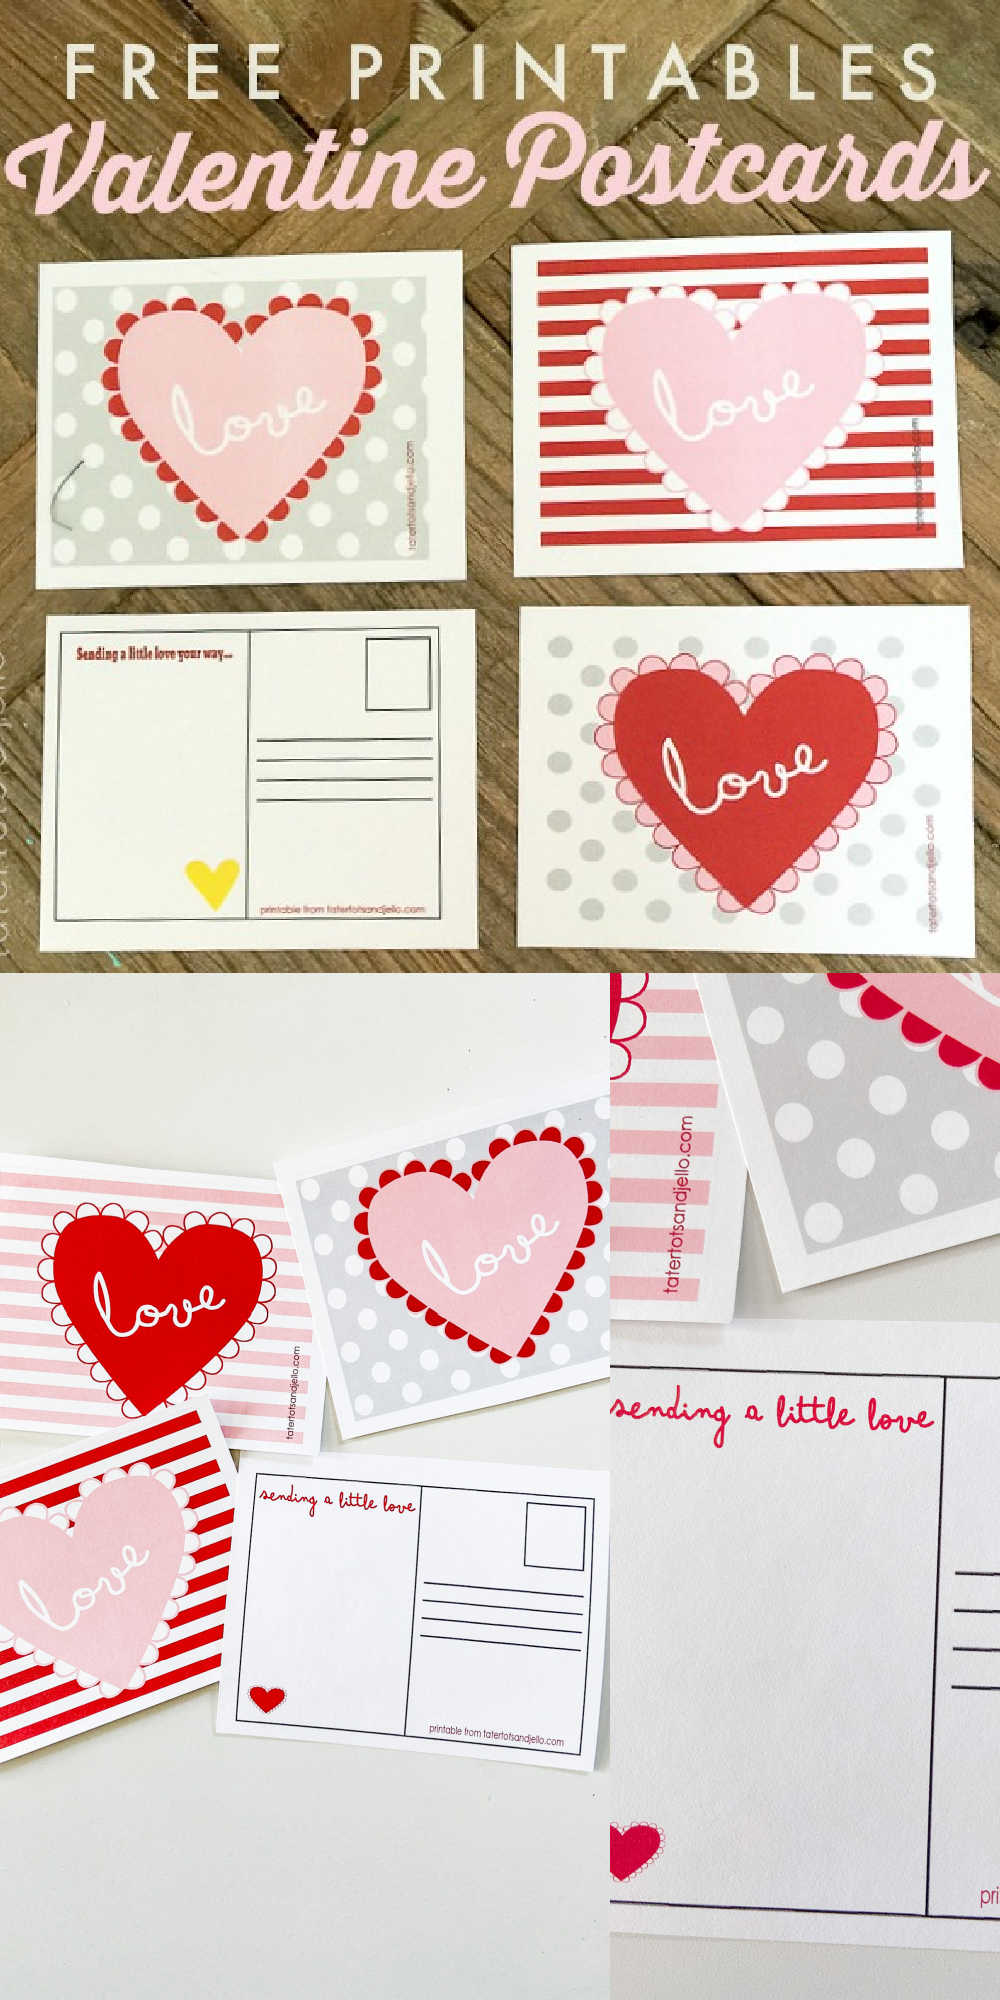 Adorable Valentine Postcards - Free Printables! Brighten up someone's day with a sweet postcard sharing why they are important to you!